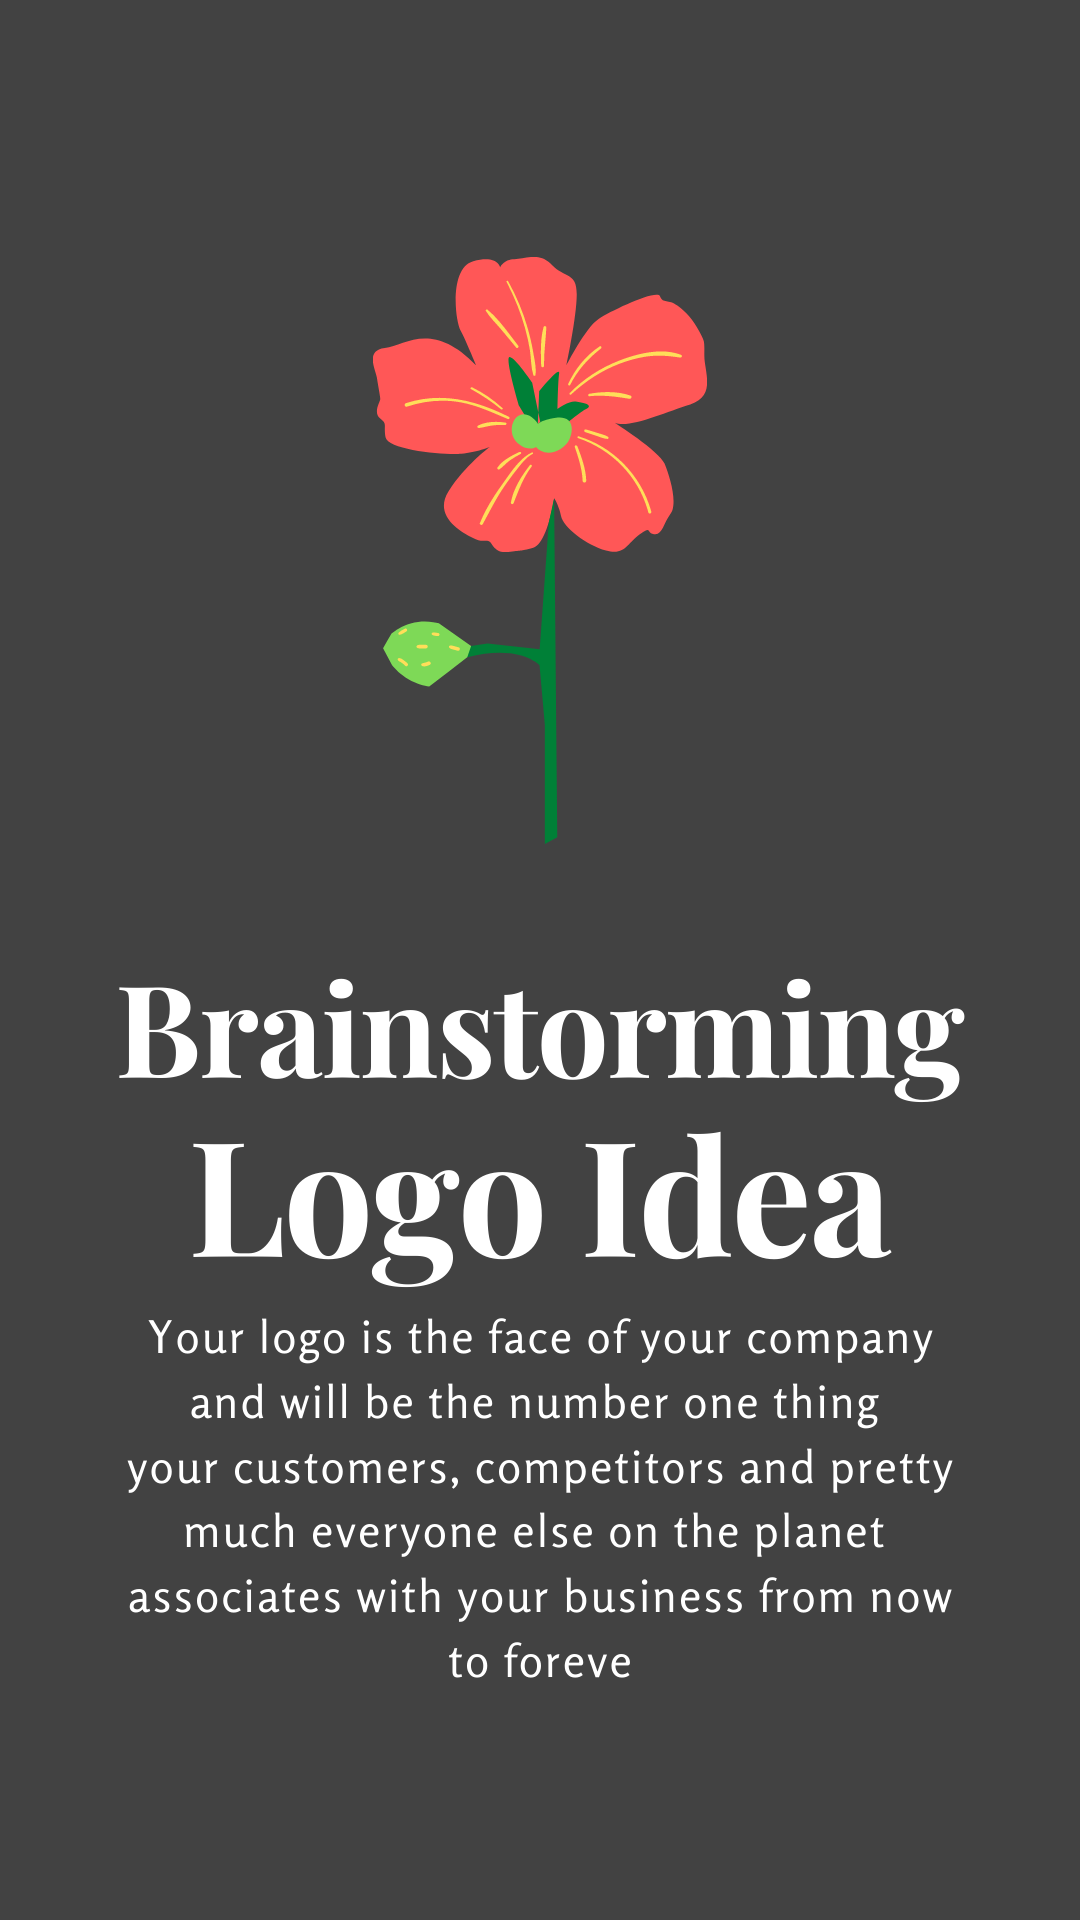 How to brainstorm a logo idea